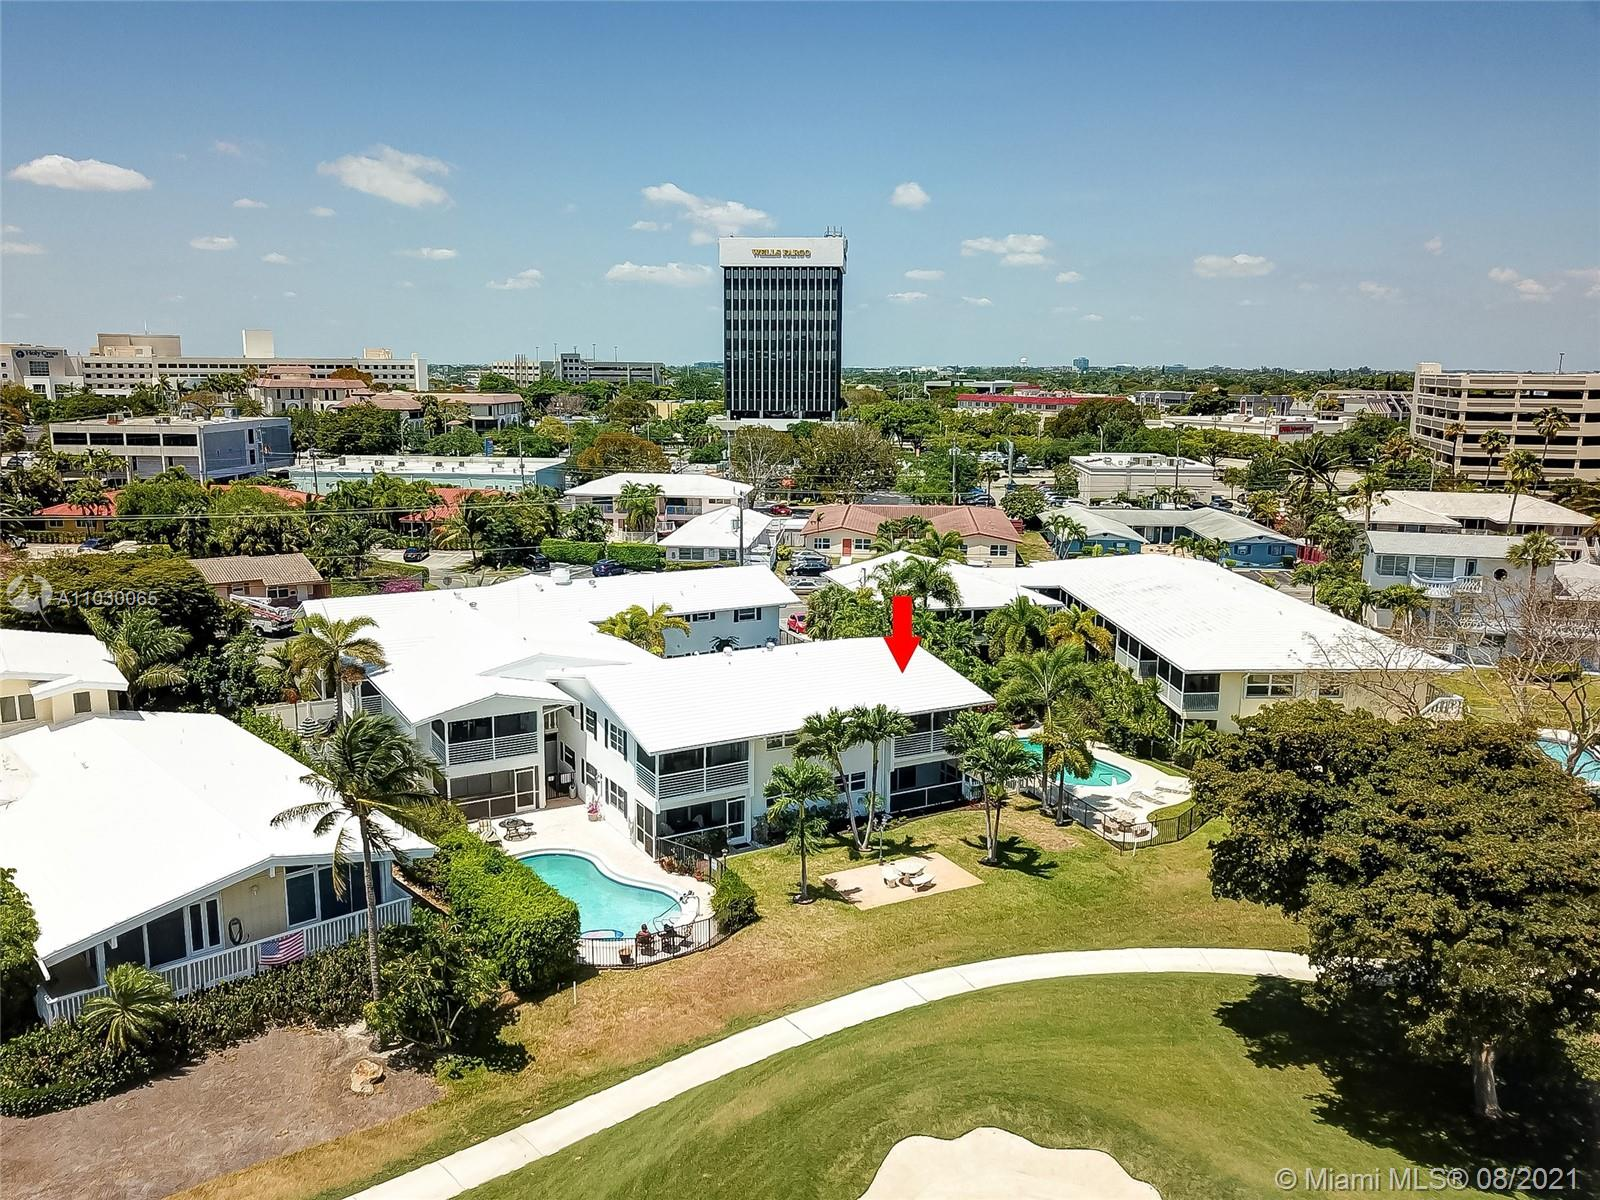 Incredible opportunity to own this gorgeous condo in the heart of Fort Lauderdale on the Coral Ridge Golf Course. Tastefully updated throughout with hardwood floors, and granite countertops in the kitchen. Impact windows throughout! Sit out on your incredible screened balcony overlooking the golf course and lake. The bathrooms were turned into one large bathroom that has access for both rooms. This building is a classic and only features 12 units total. It has an awesome pool and bbq/picnic area. Do not miss out! All ages welcome!